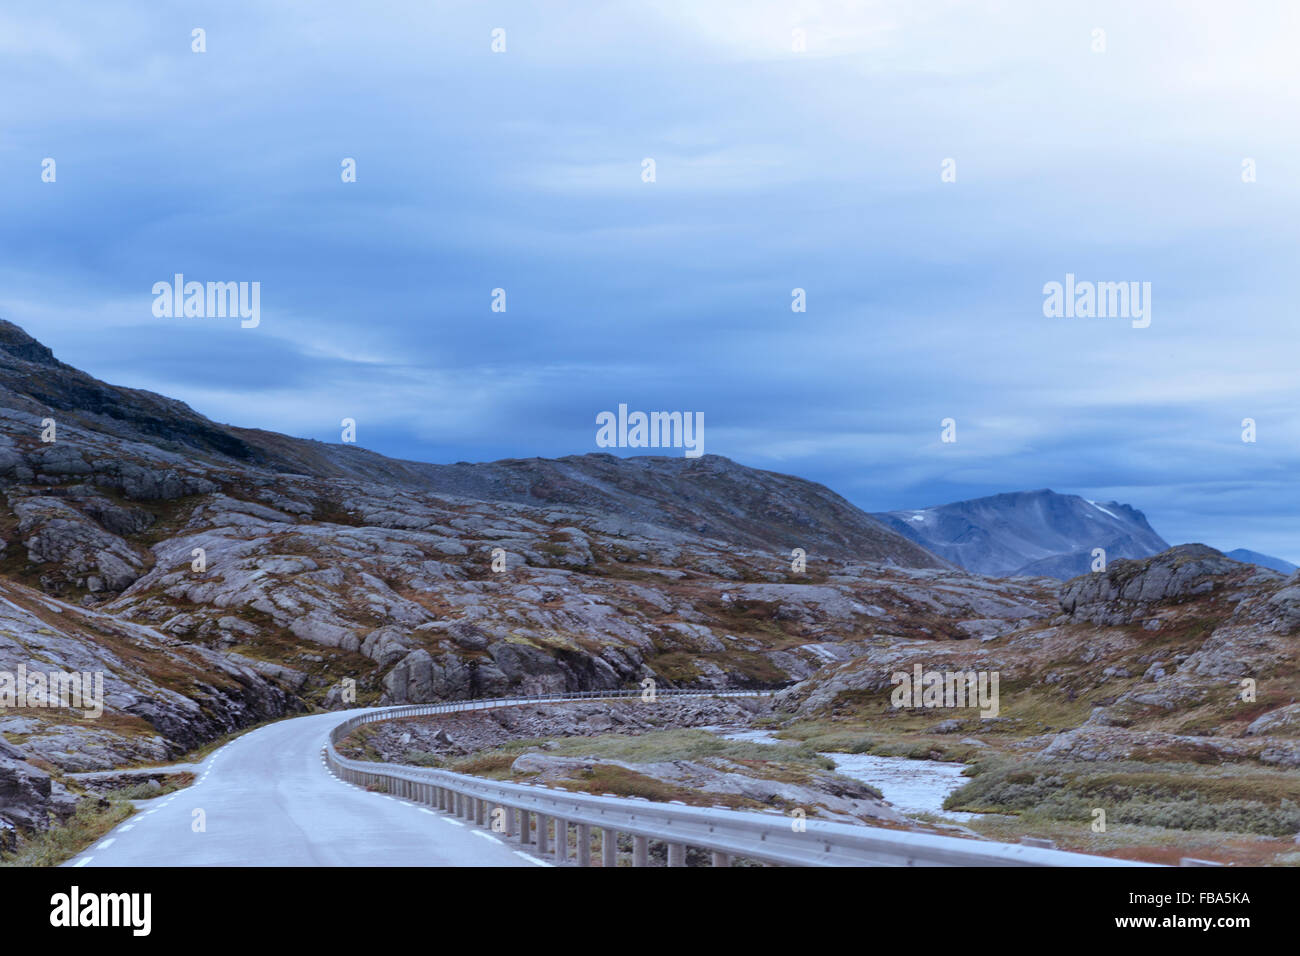 Norway, More og Romsdal, Sunnmore, View of road in mountainous landscape - Stock Image